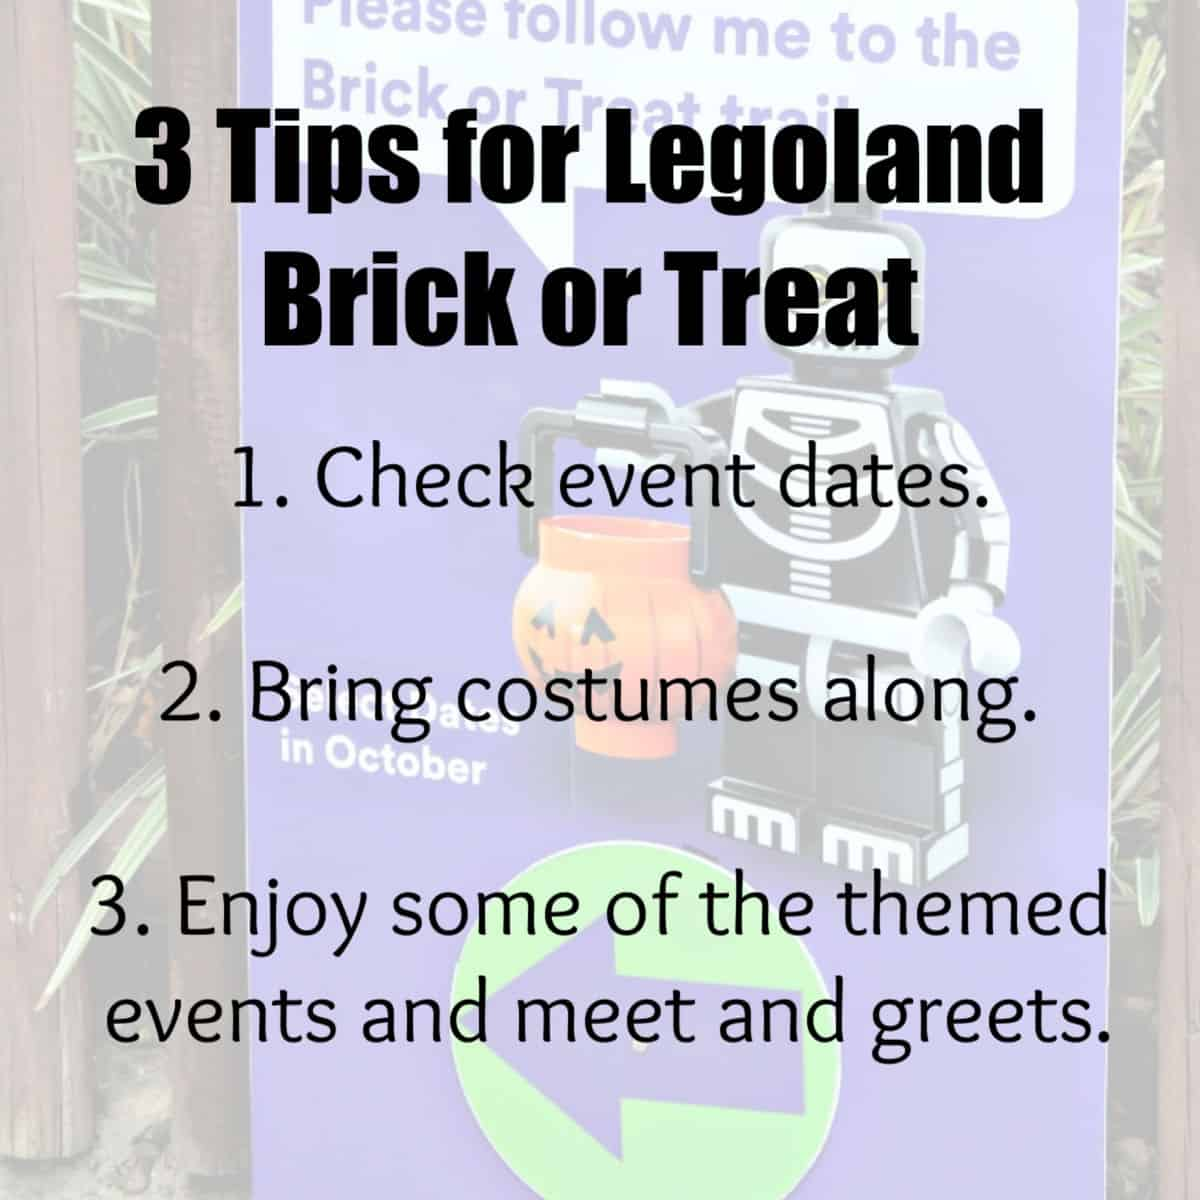 3 tips for Legoland Brick or Treat